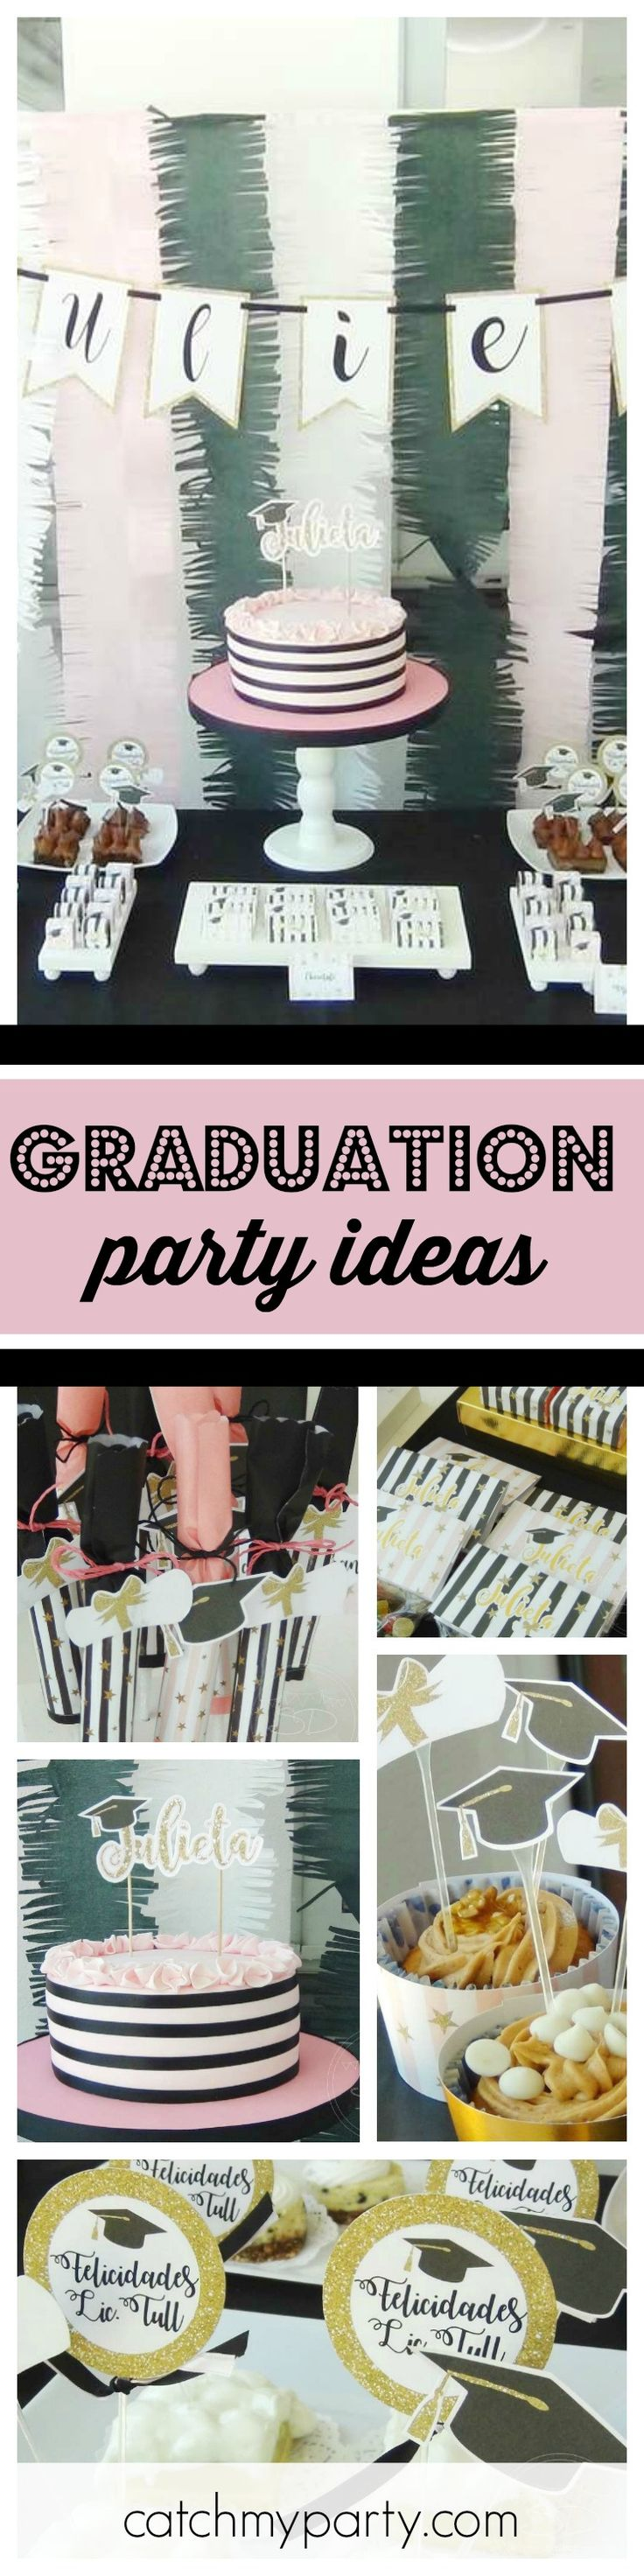 Celebrate in style with this fabulous Graduation party. The pink, white and black dessert table is so cool!! See more party ideas and share yours at CatchMyParty.com